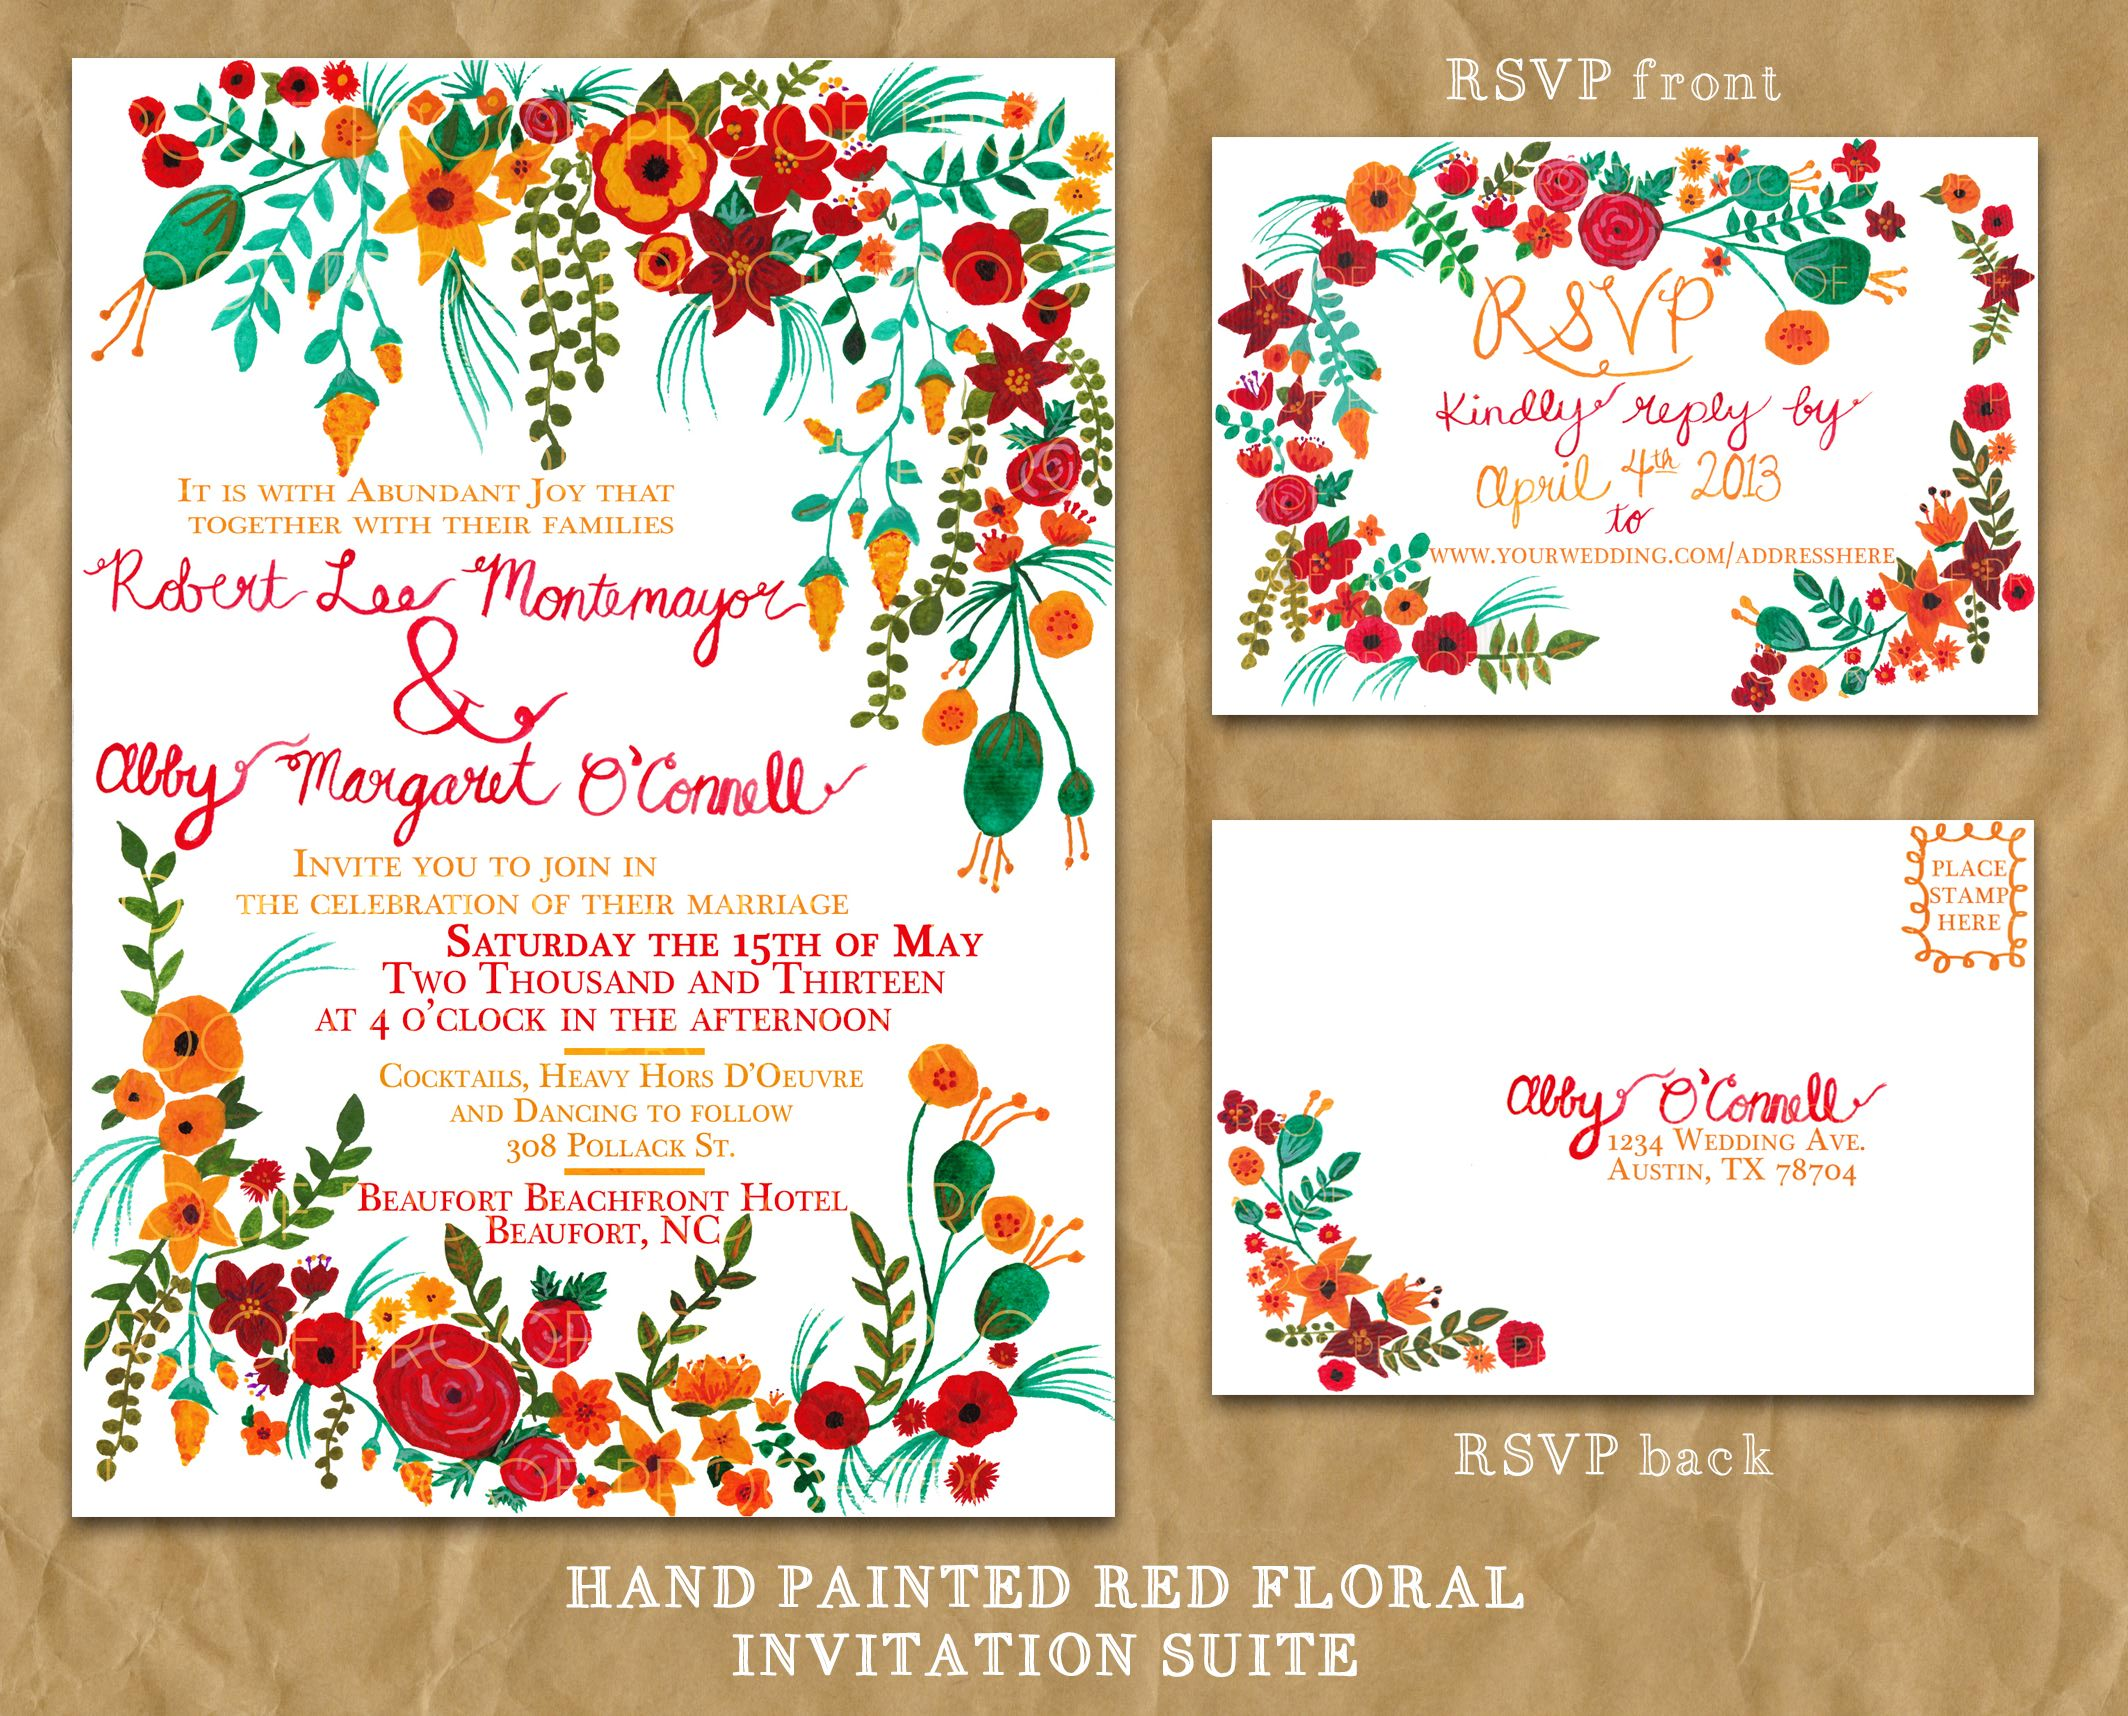 Painted Wedding Invitations: Hand-painted Floral Wedding Invitation